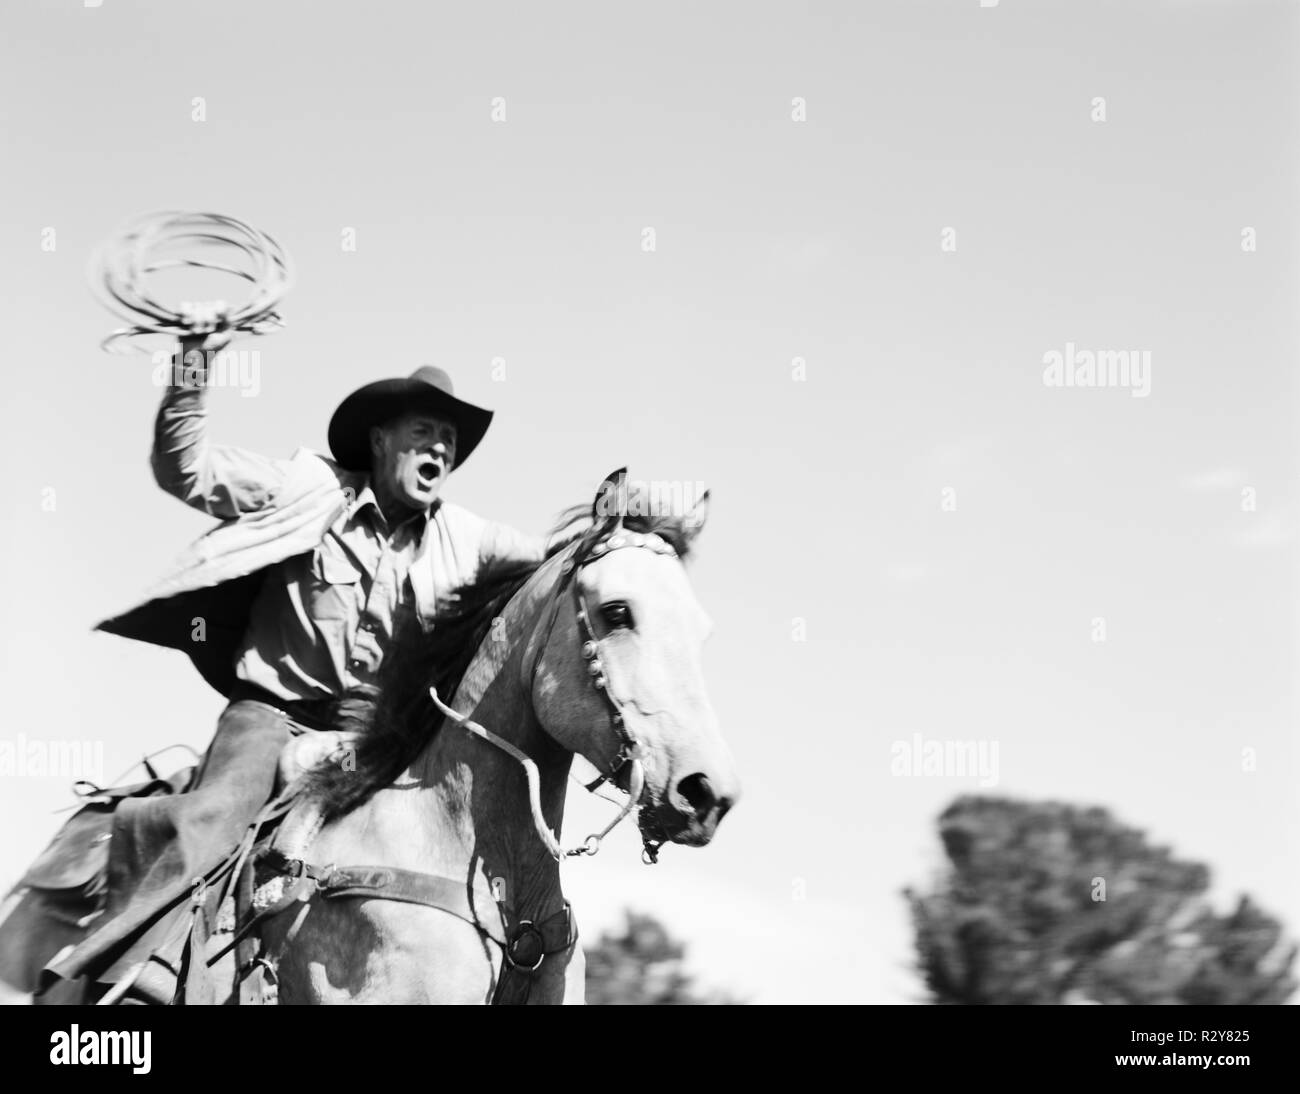 Mature cowboy riding a horse and swinging a lasso outdoors. - Stock Image